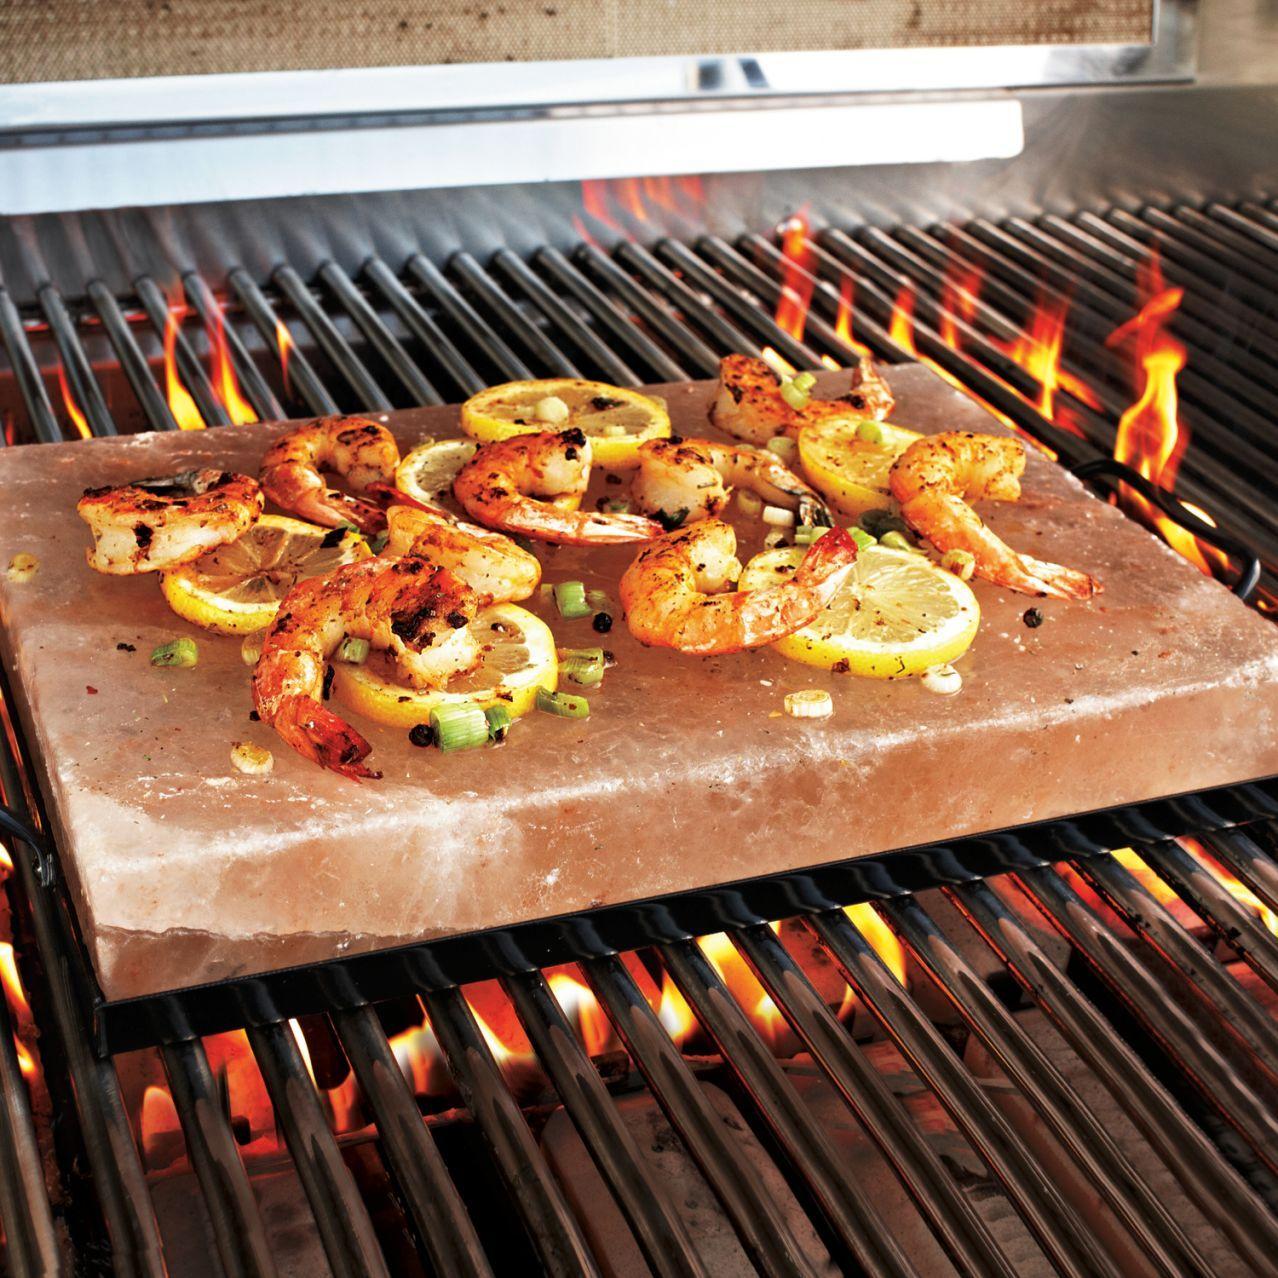 3 New Amazing Ways To Grill Your Food And Make It Delicious New Ways To Enjoy Your Summer With Good Food Alimentos Gourmet Receitas Culinaria